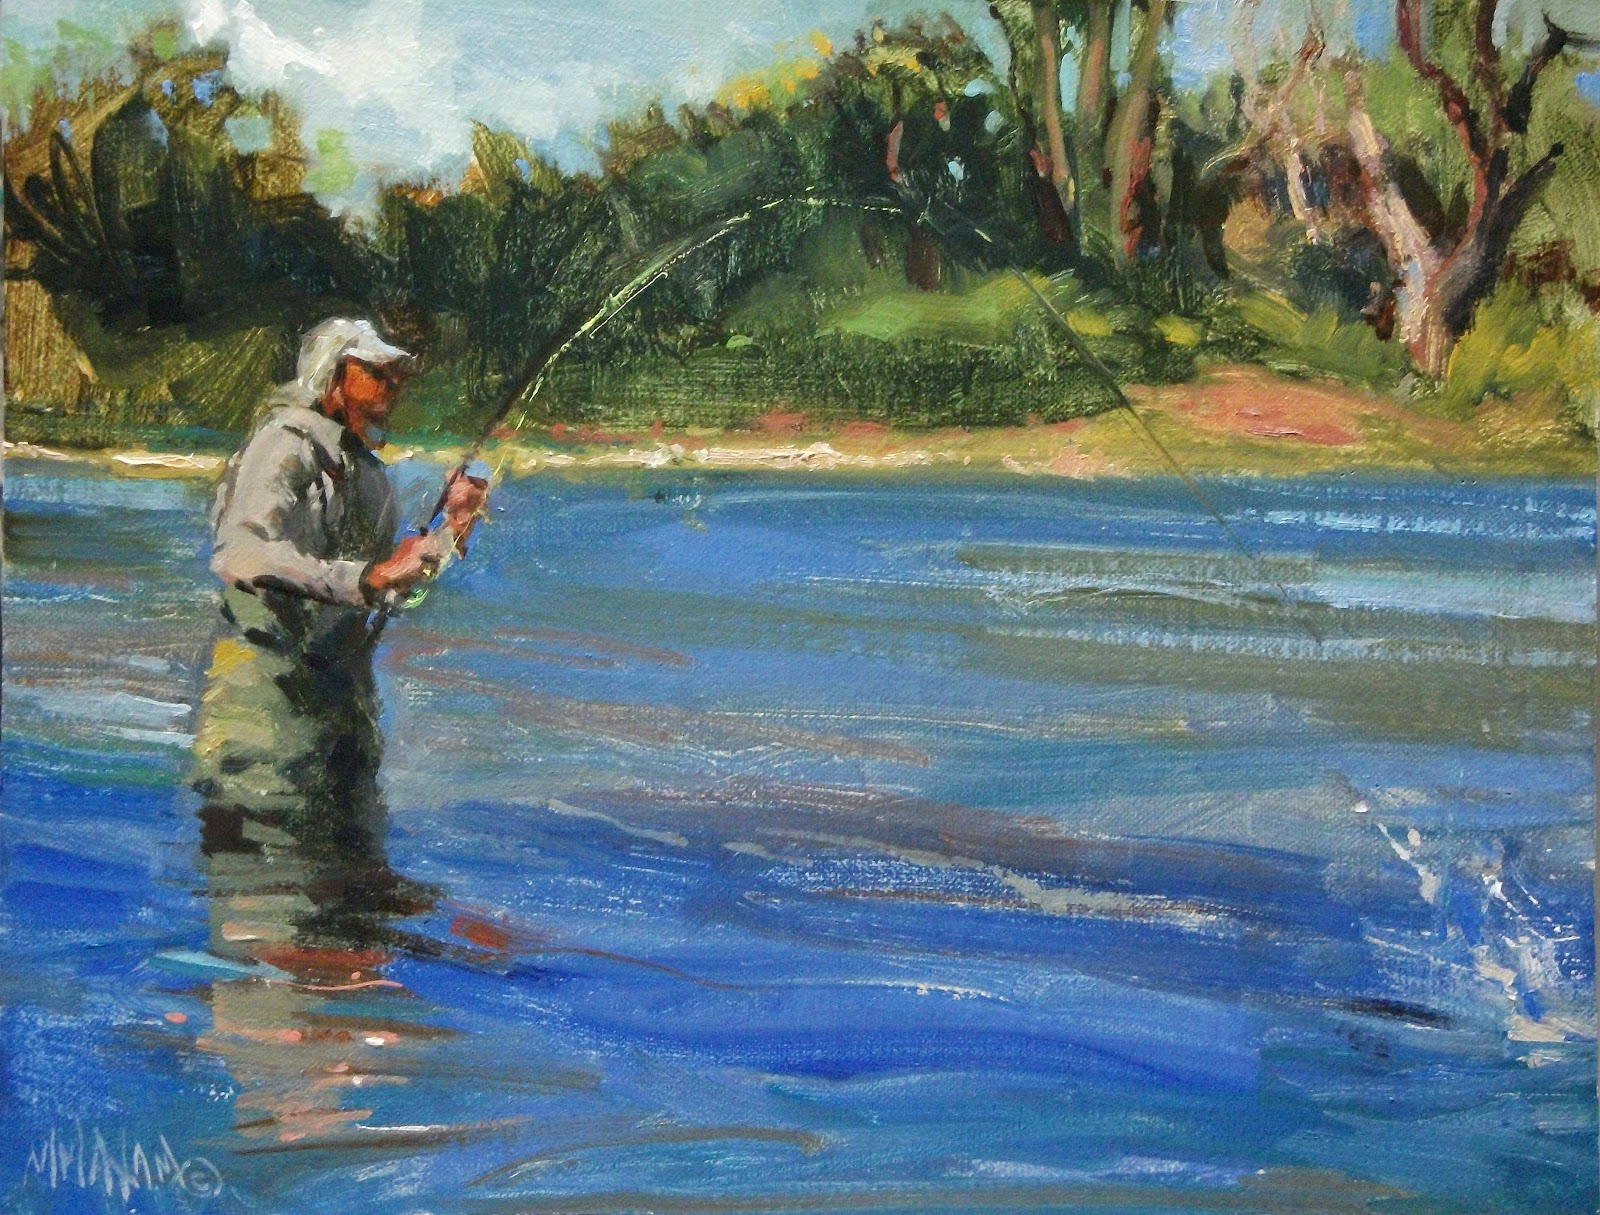 Mary maxam paintings july 2012 for Pictures of big fish